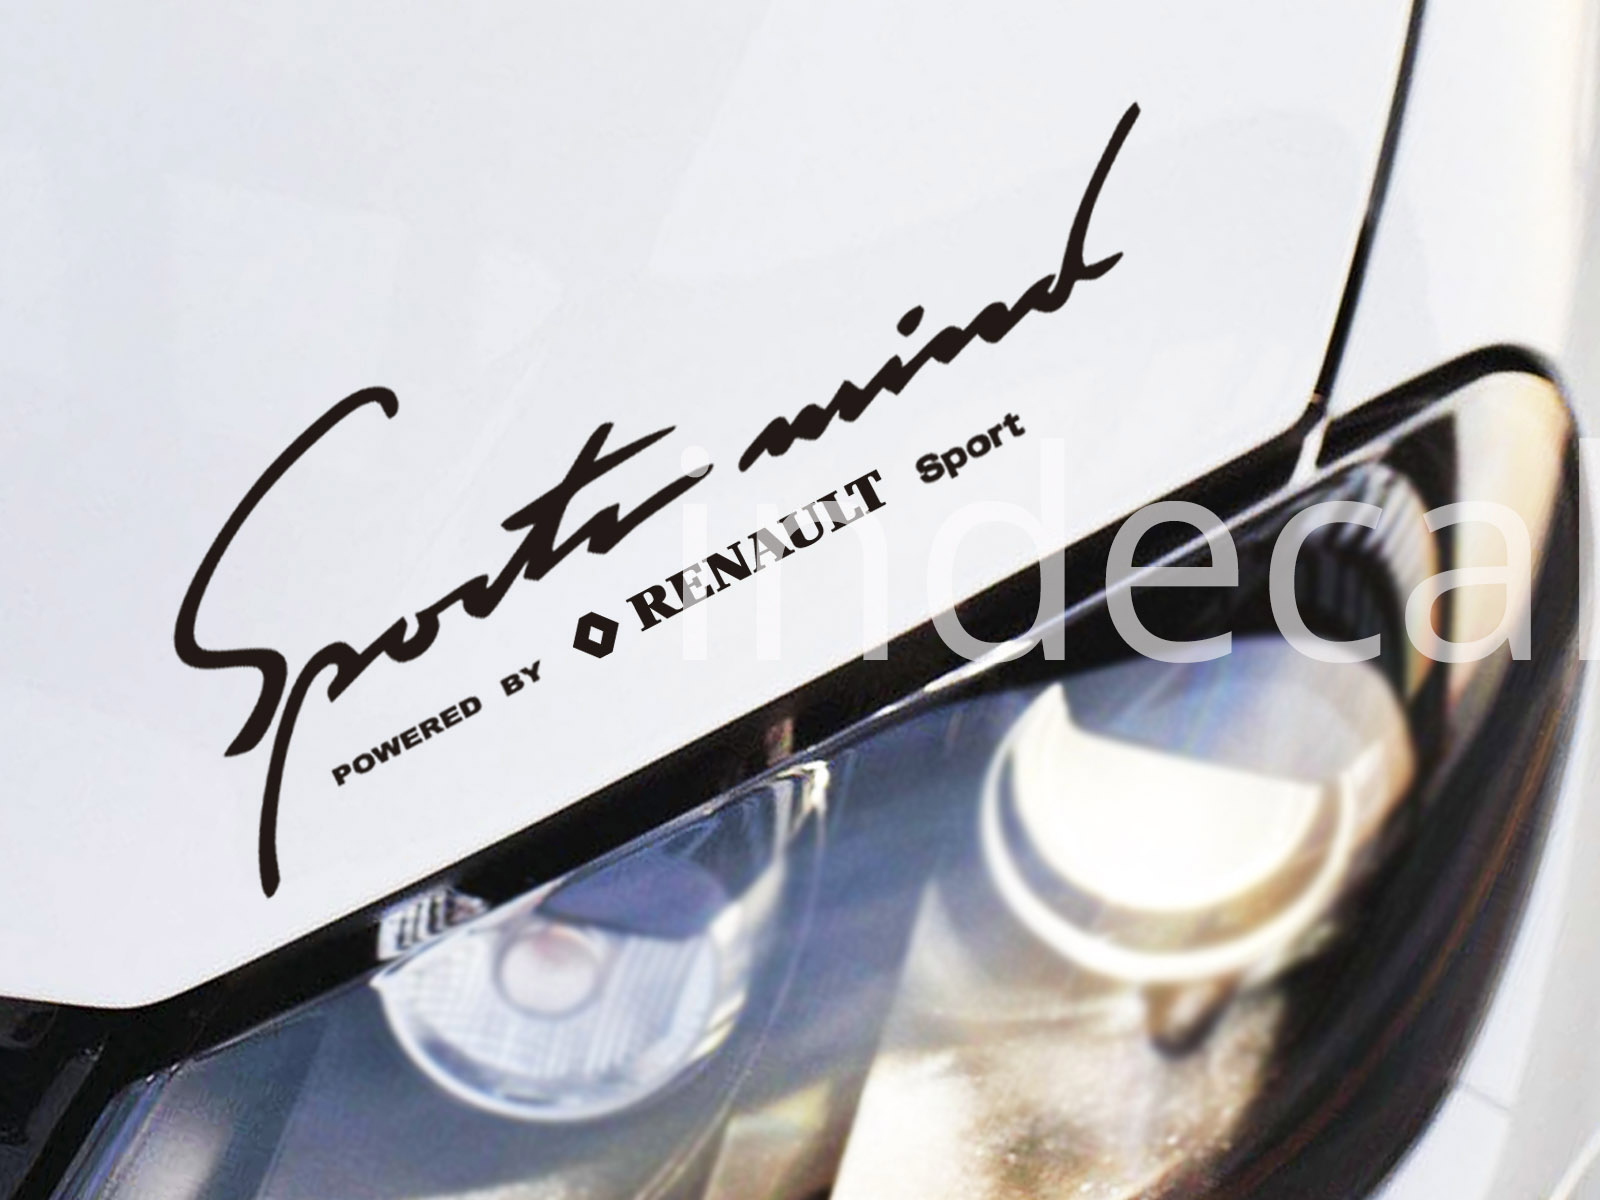 1 x Renault Sports Mind Sticker - Black